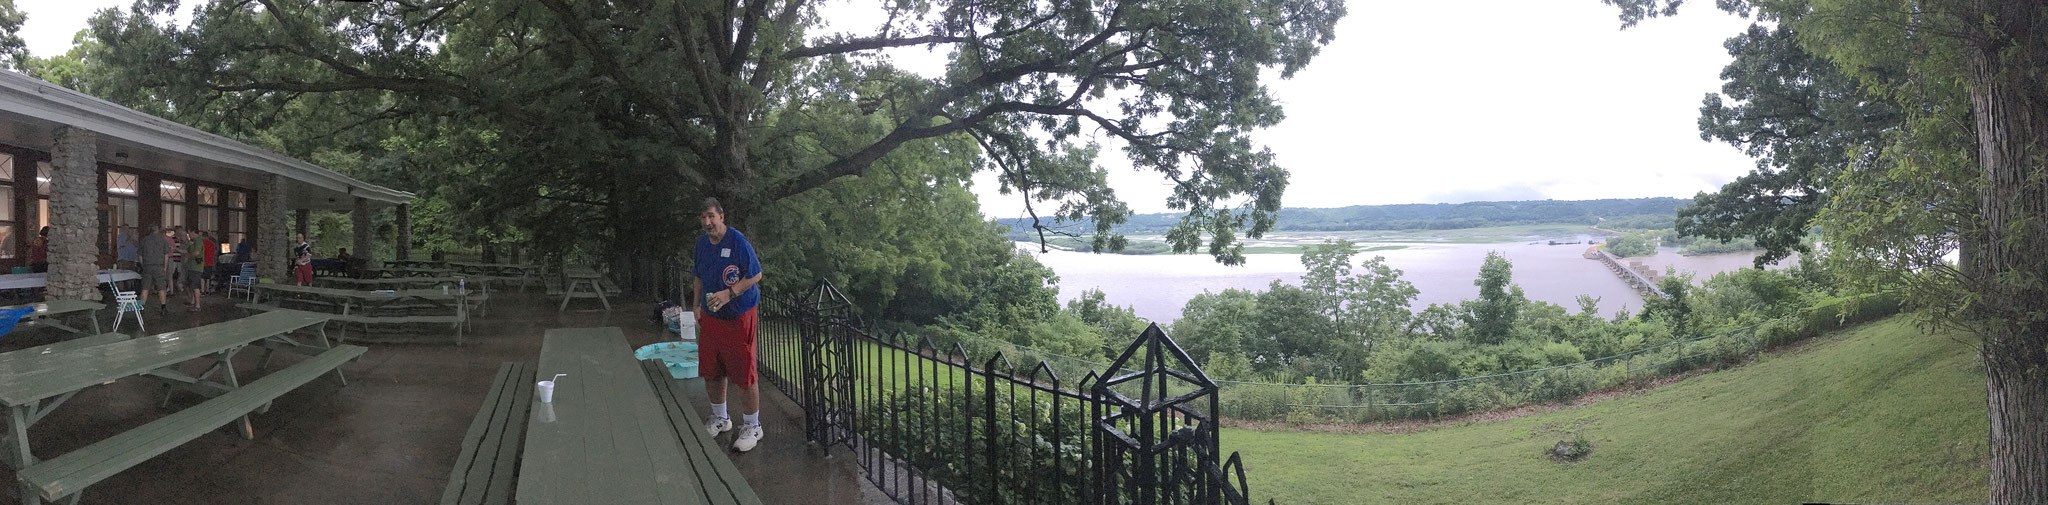 Paul Wager in a Pano view of the Mississippi.